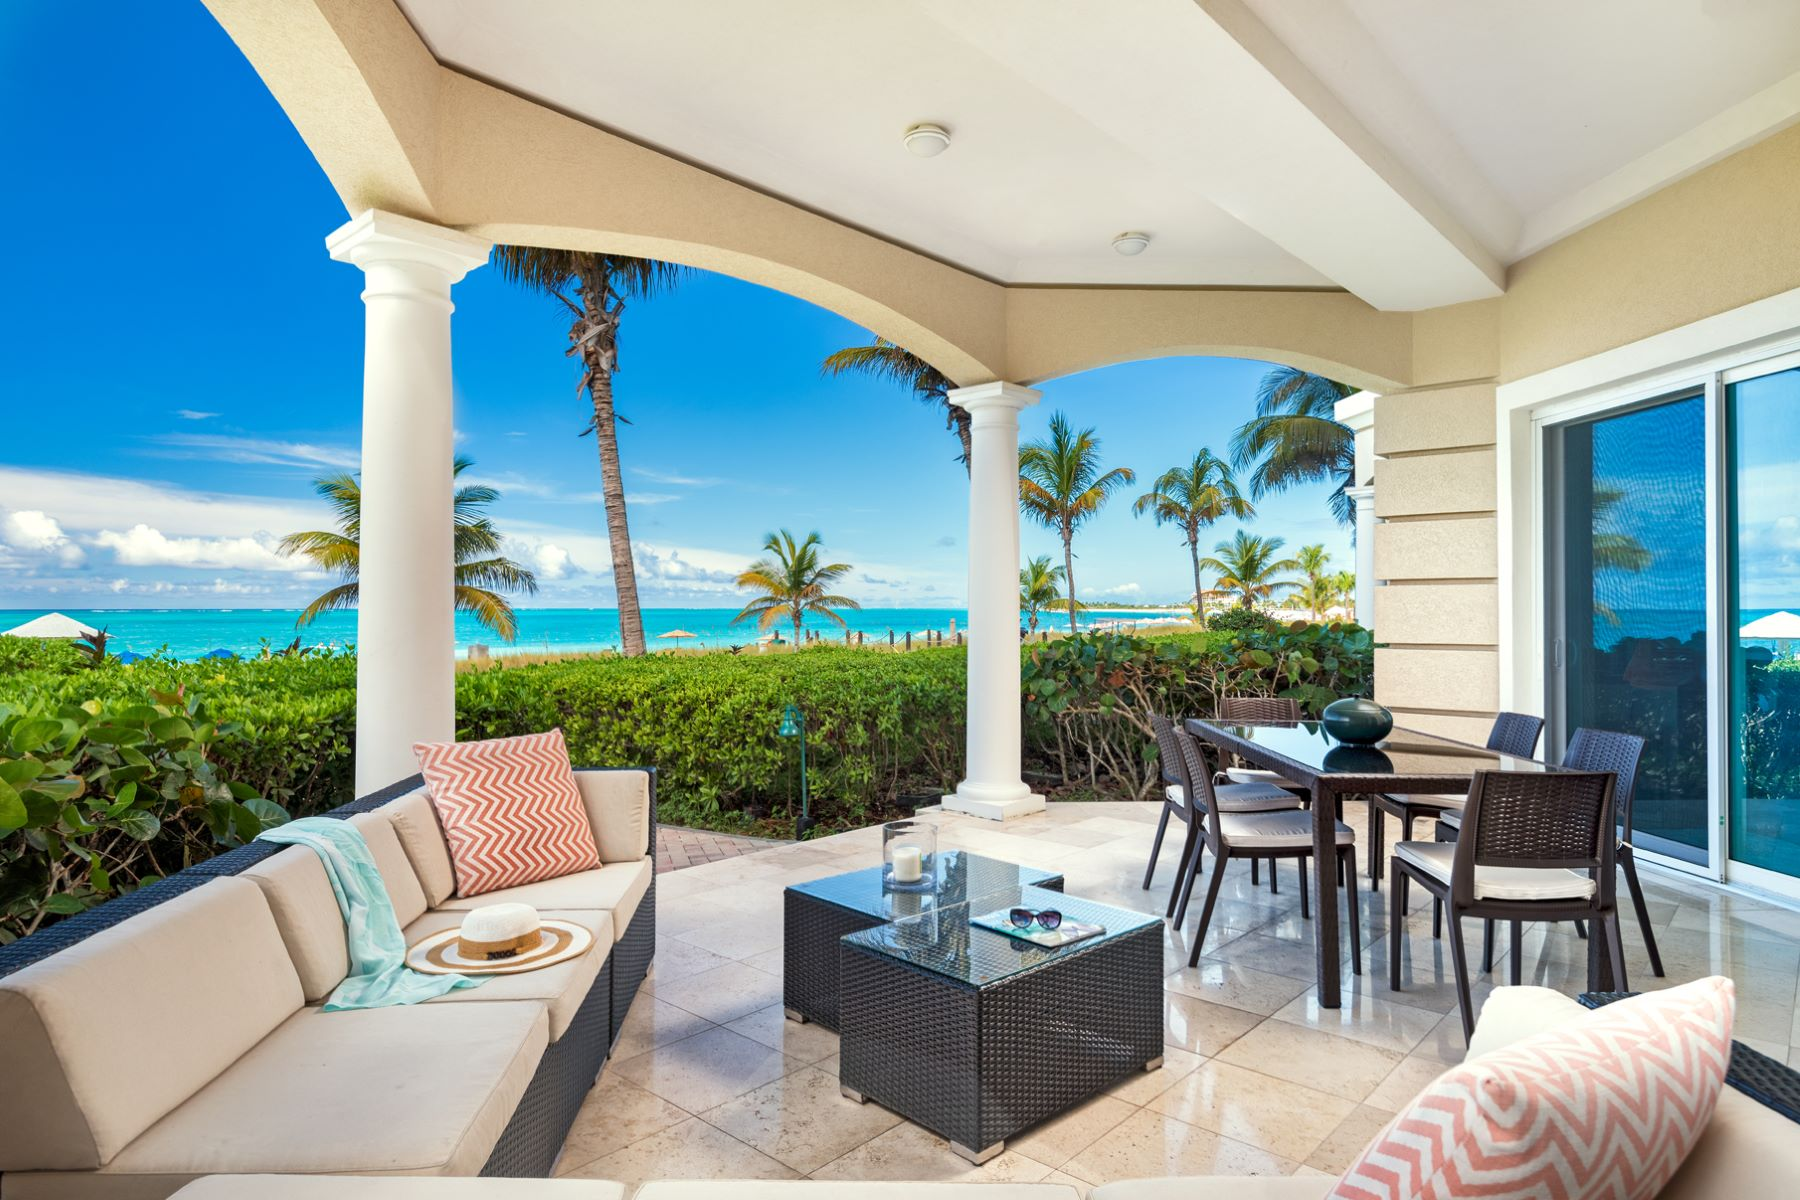 Additional photo for property listing at The Pinnacle Suite 107 Beachfront The Pinnacle 107 Grace Bay, Providenciales TCIBWI Turks And Caicos Islands